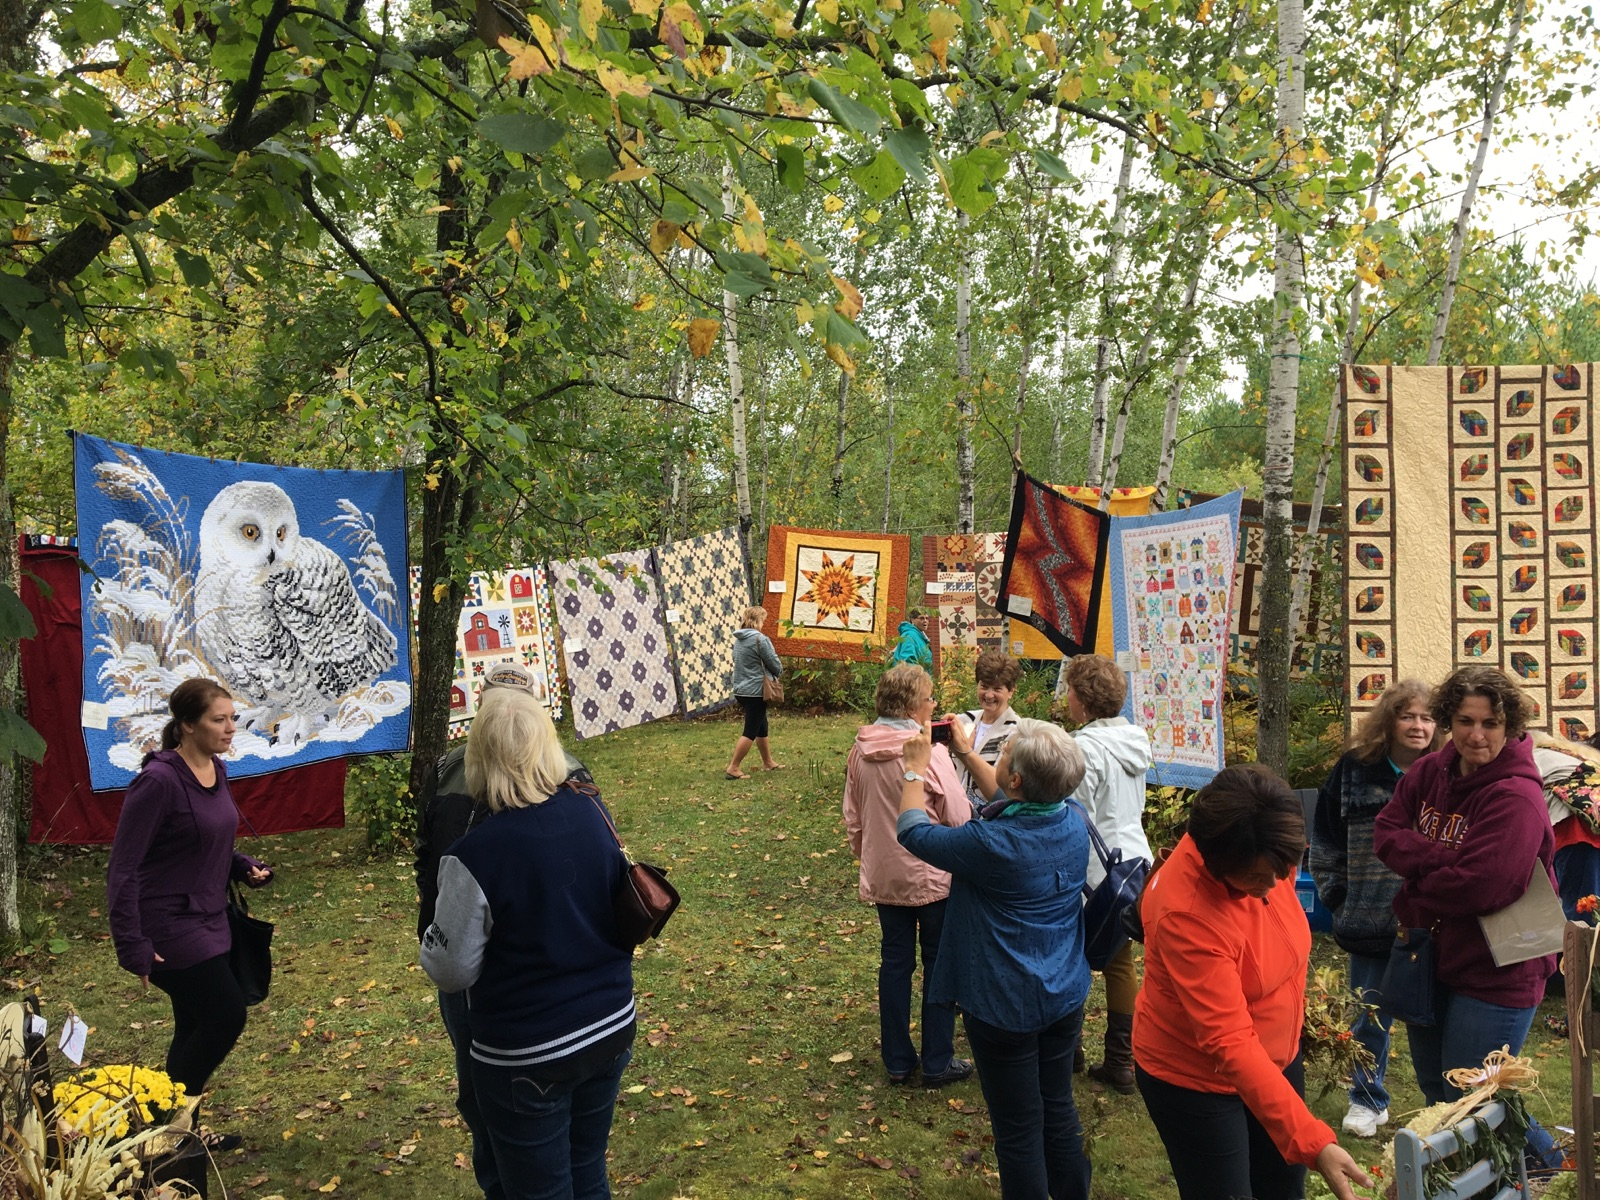 Caption: Quilts in Trees, Credit: Bonnie Lundorff